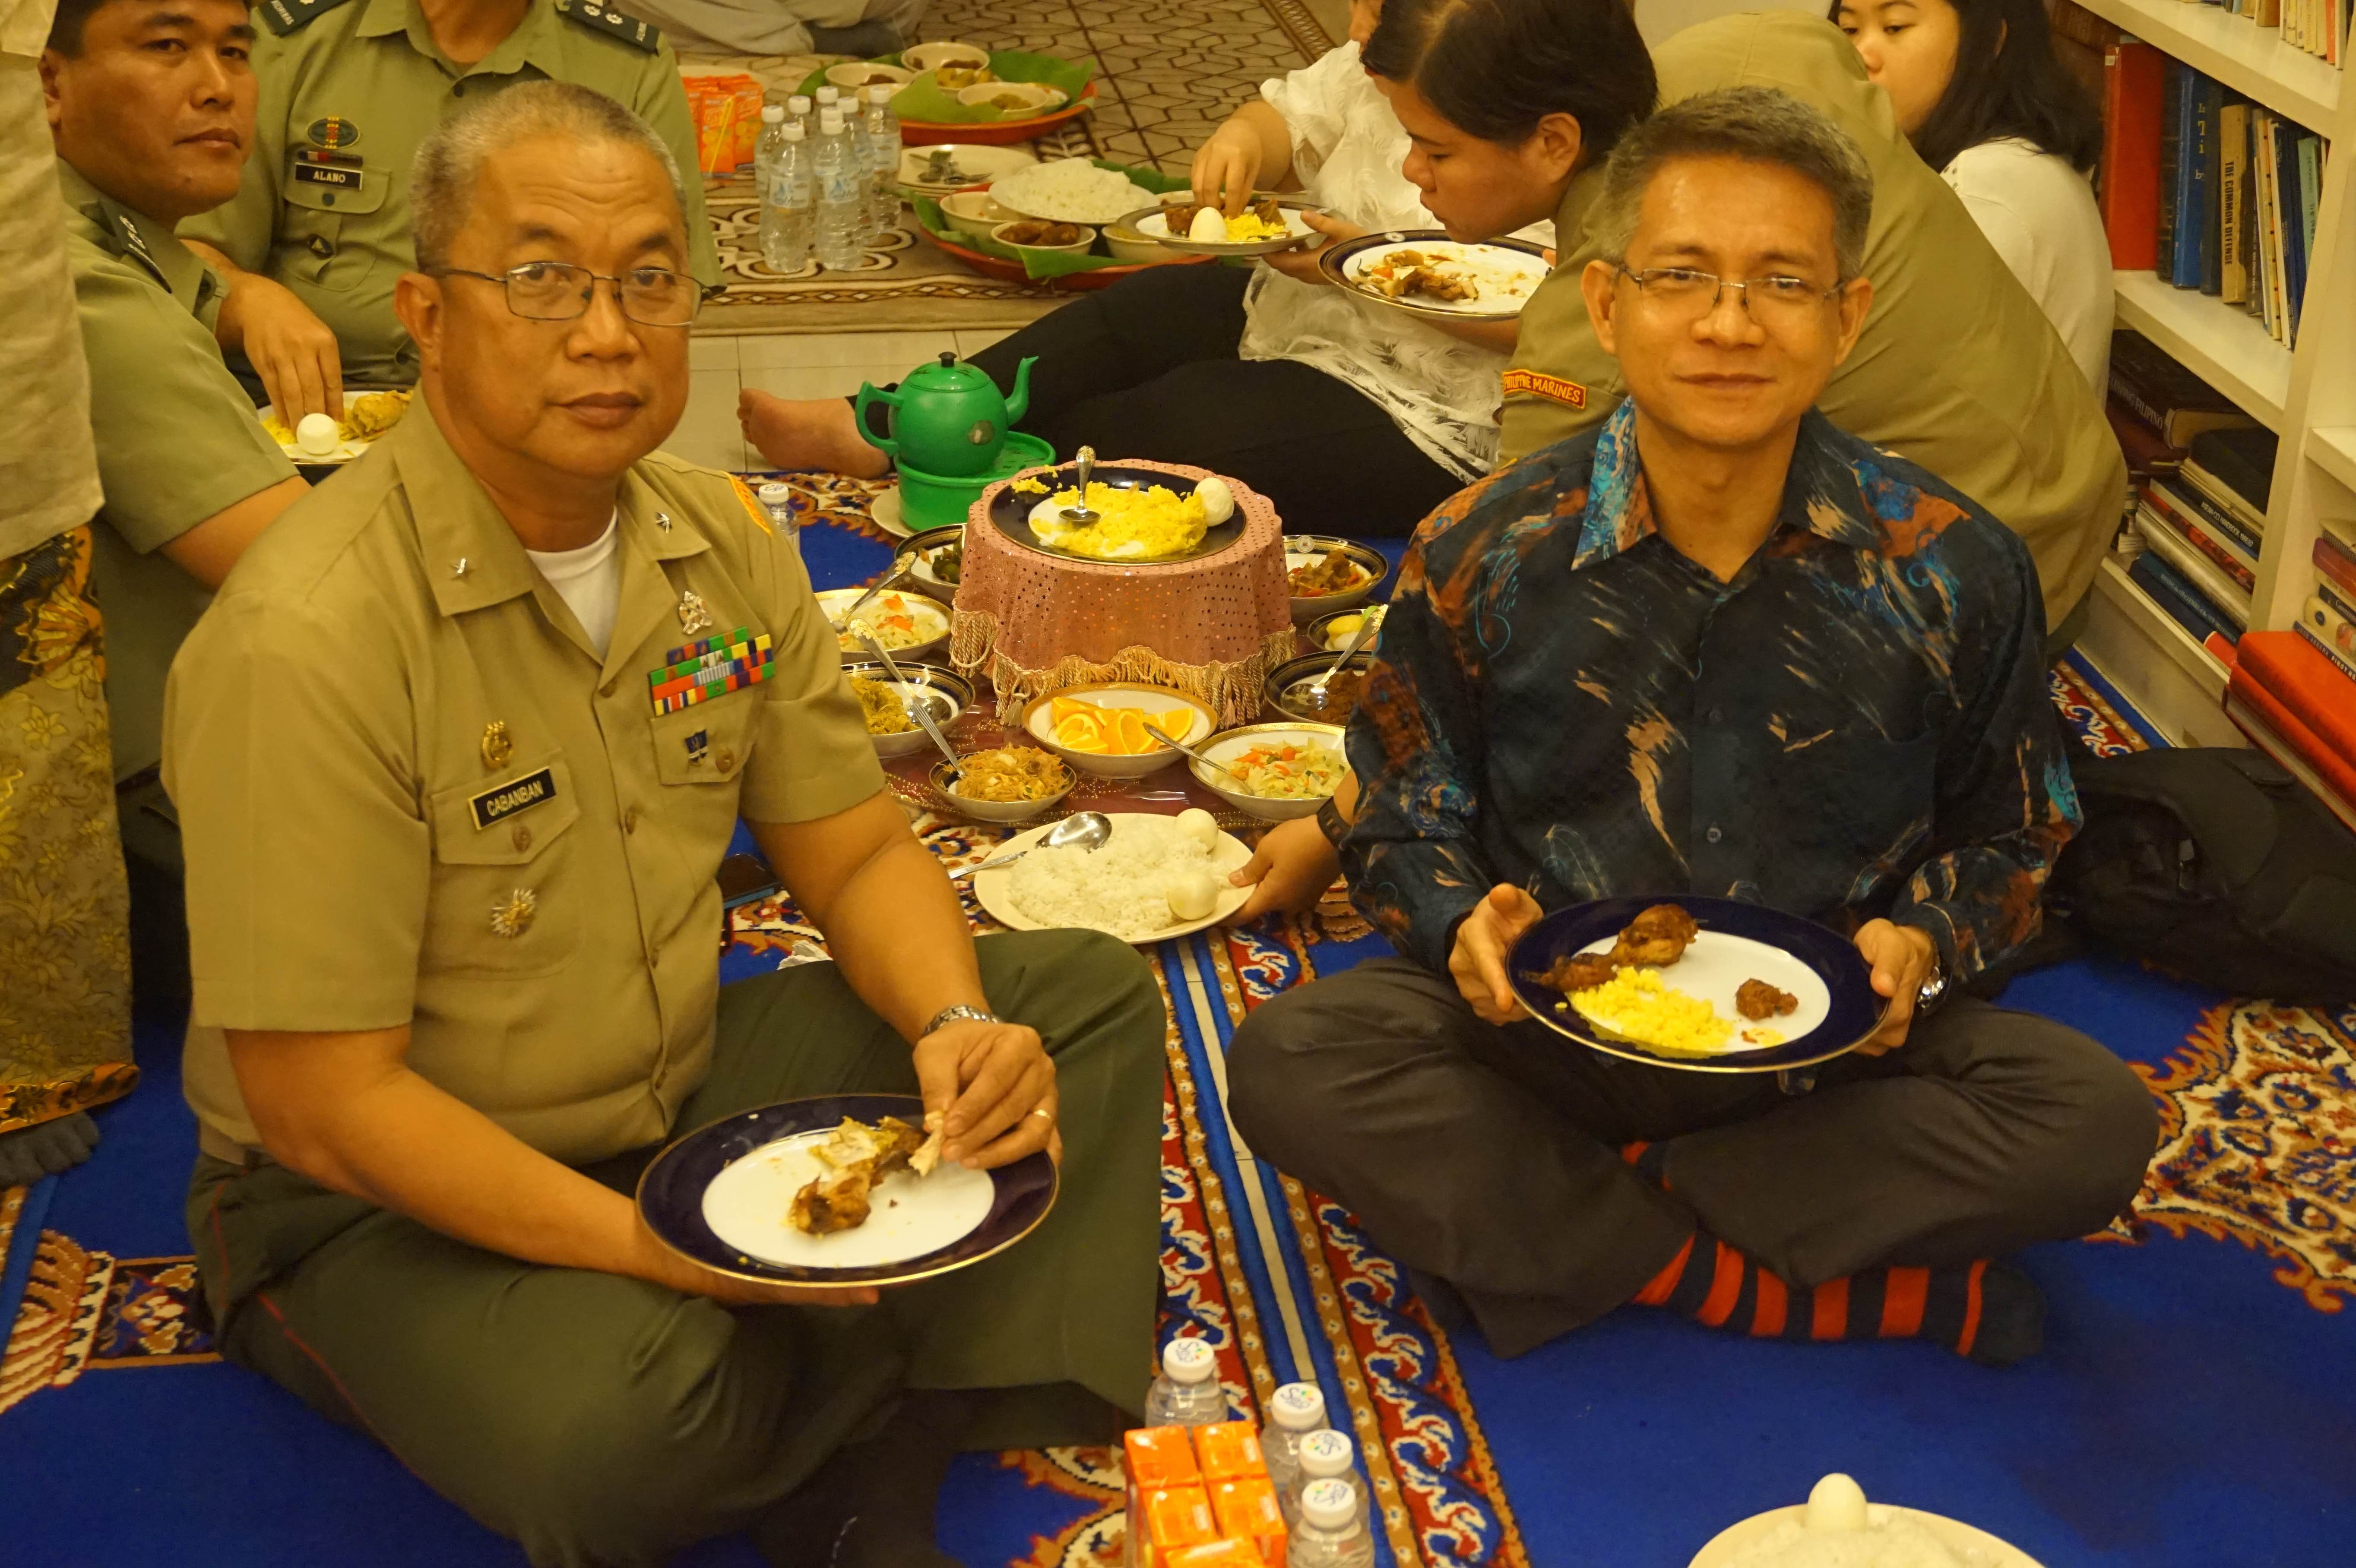 TRADITION. Cabanban and Ambassador Eduardo Malaya join the youth delegates on the carpeted floor for a traditional Muslim Filipino meal with the delegates. Photo by Carol Ramoran